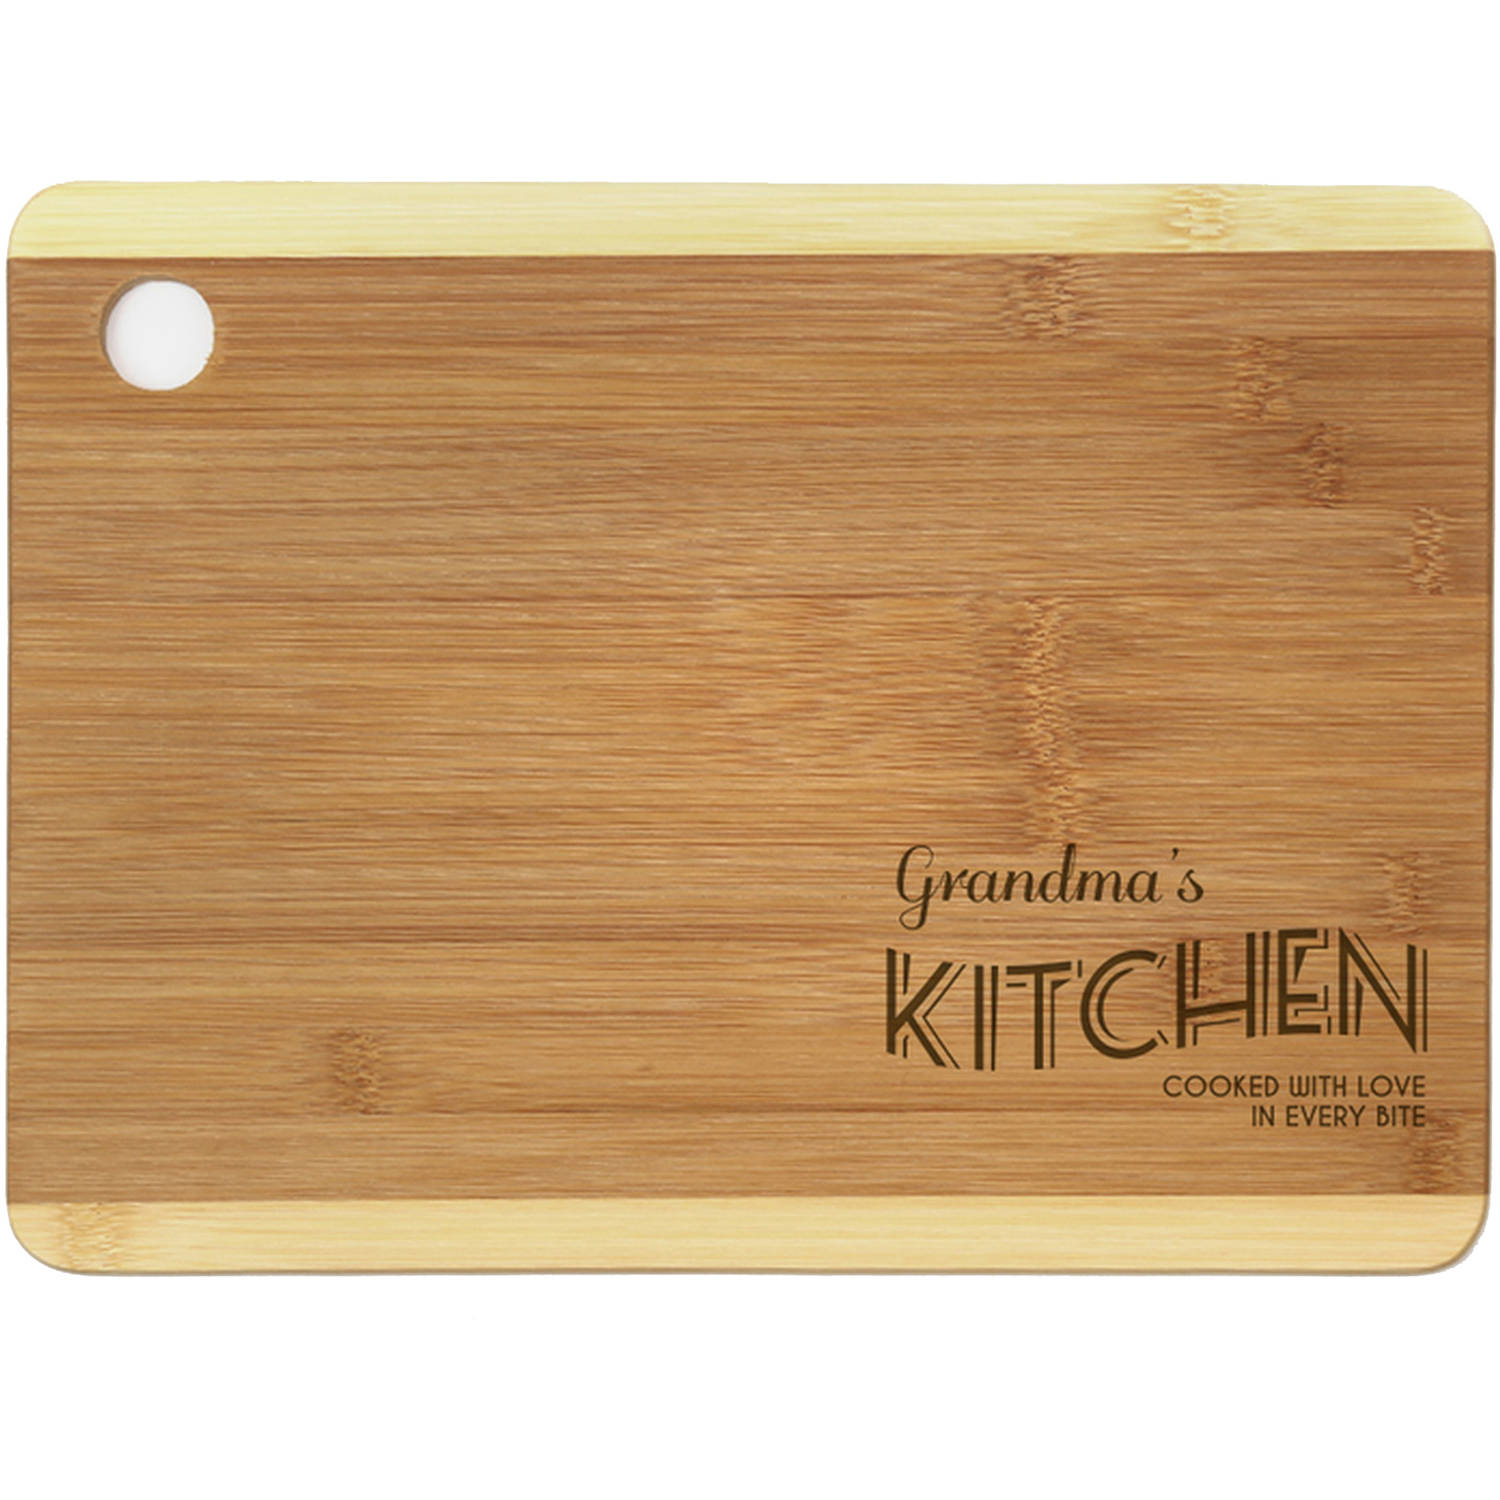 "Personalized Cooked with Love Cutting Board, Sizes 12.5"" x 11.5"" and 12.5"" x 13.75"""